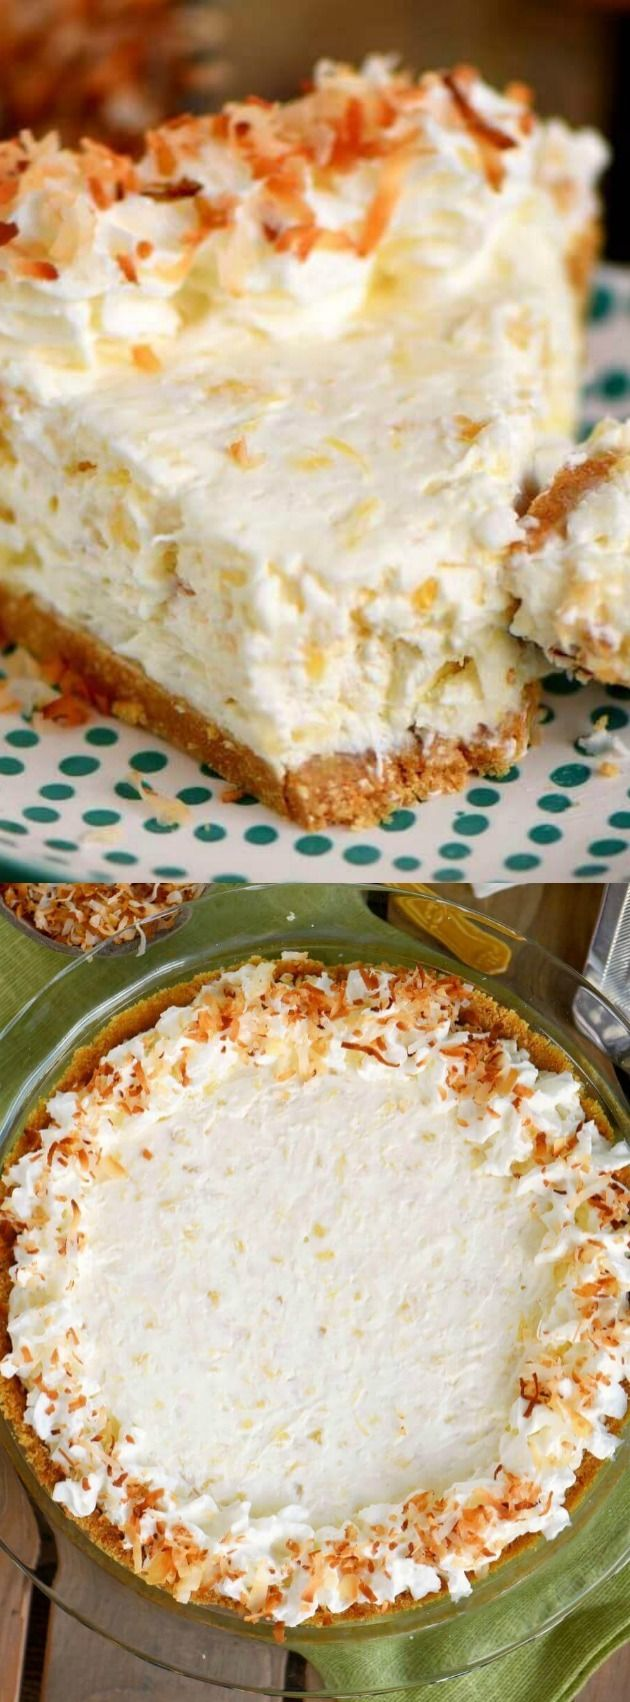 No Bake Pina Colada Cream Pie - love sipping on a pina colada? You're going to love this pie!